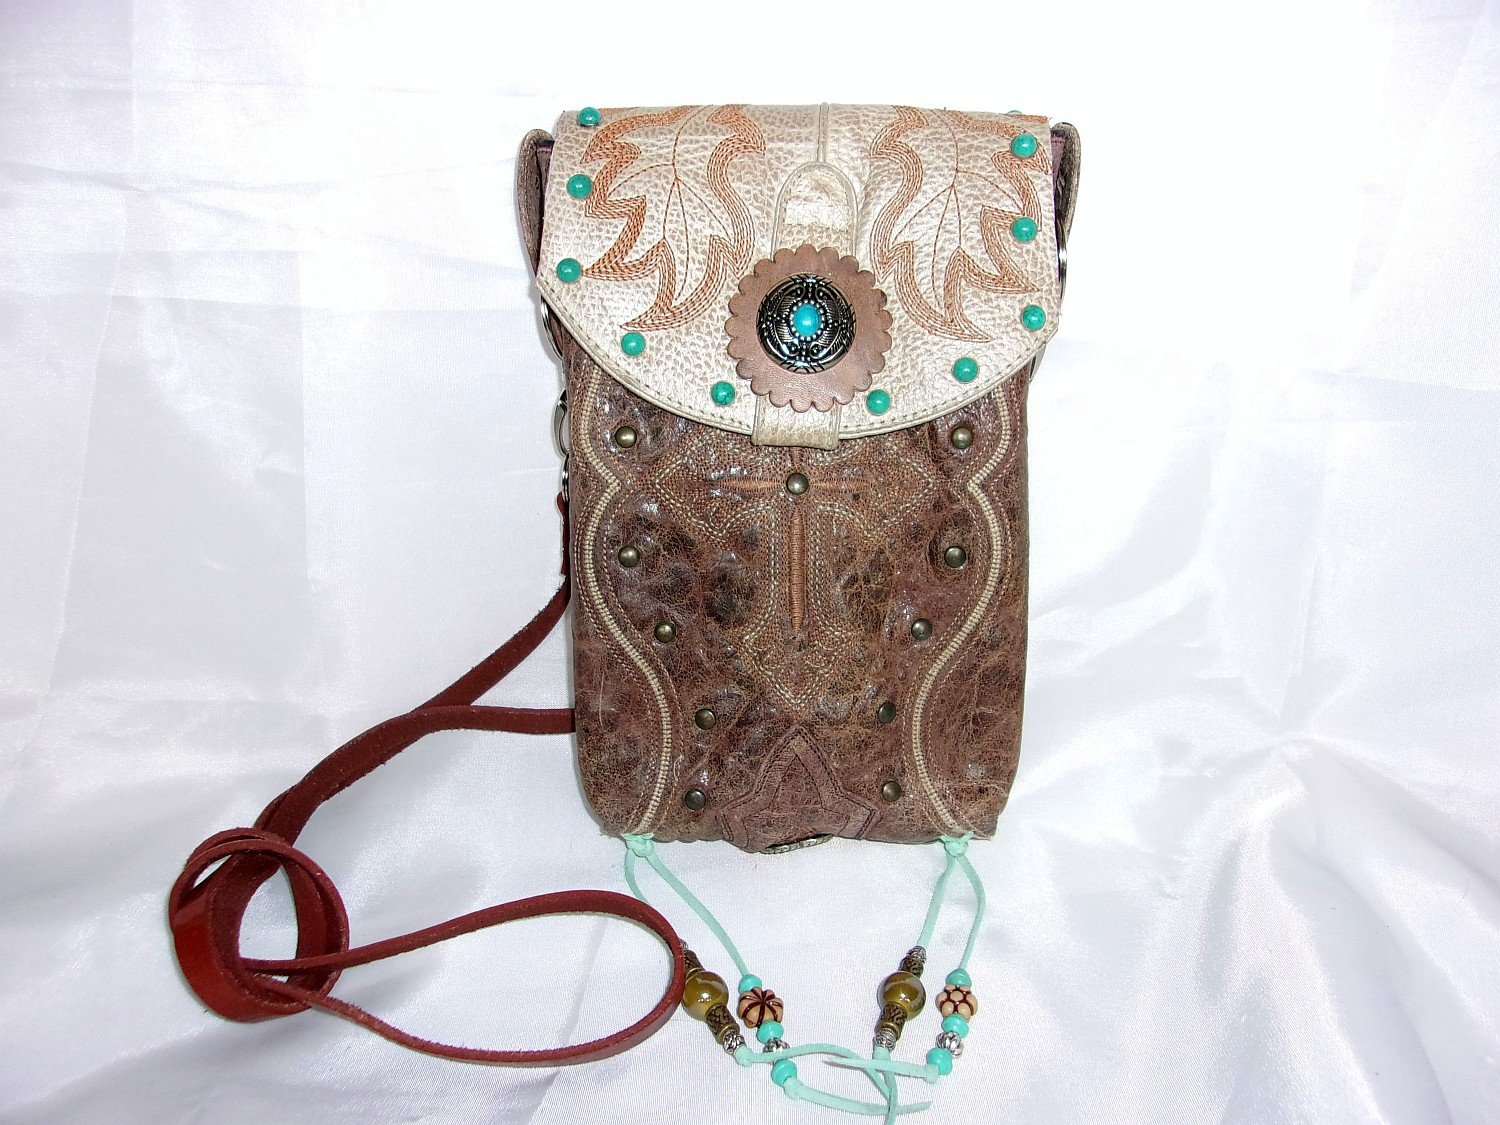 Turquoise Cross Cross-Body Leather Hipster HP721 - Cowboy Boot Purses by Chris Thompson for Distinctive Western Fashion